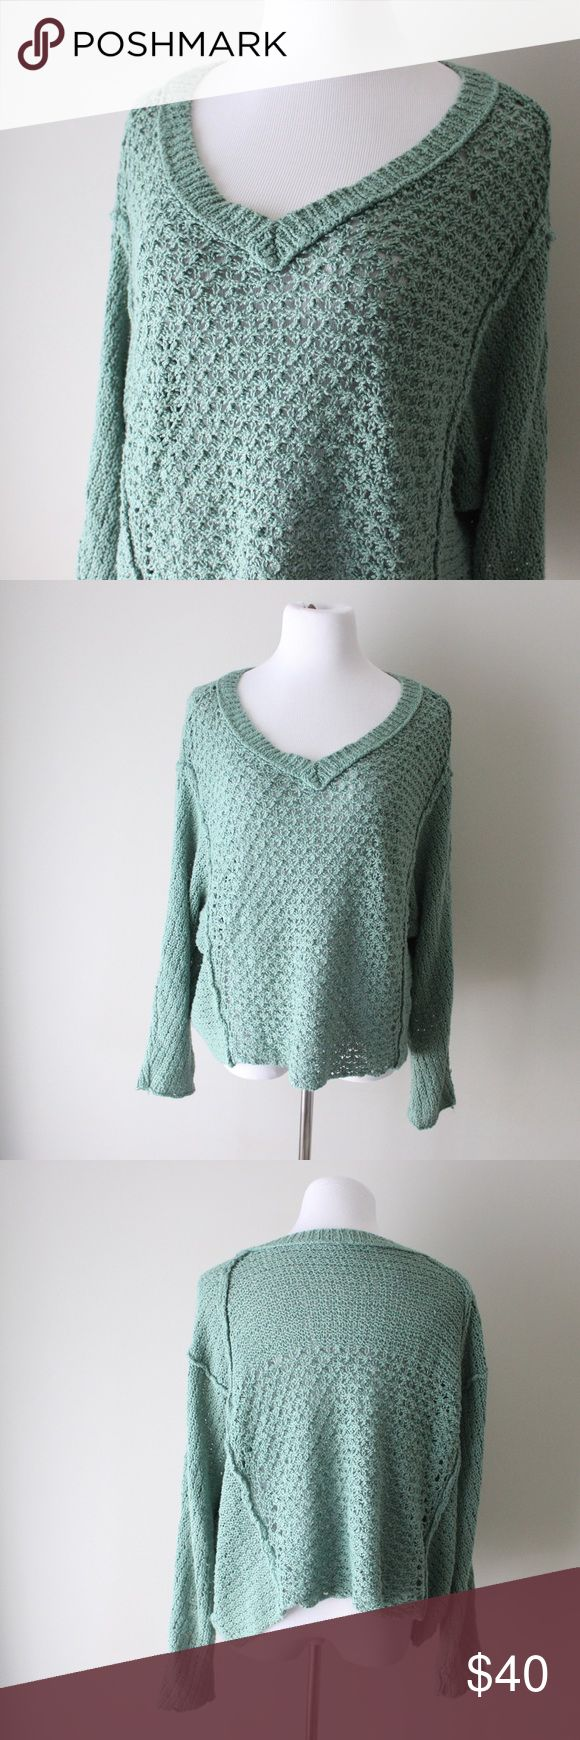 Free People Seafoam Loose Knit Sweater Free People seafoam green loose knit long sleeve sweater.  Fits true to size.  Shown on a size 4/6 mannequin.  In gently used good condition.  Measurements available upon request.  All orders ship same or next business day! Free People Sweaters